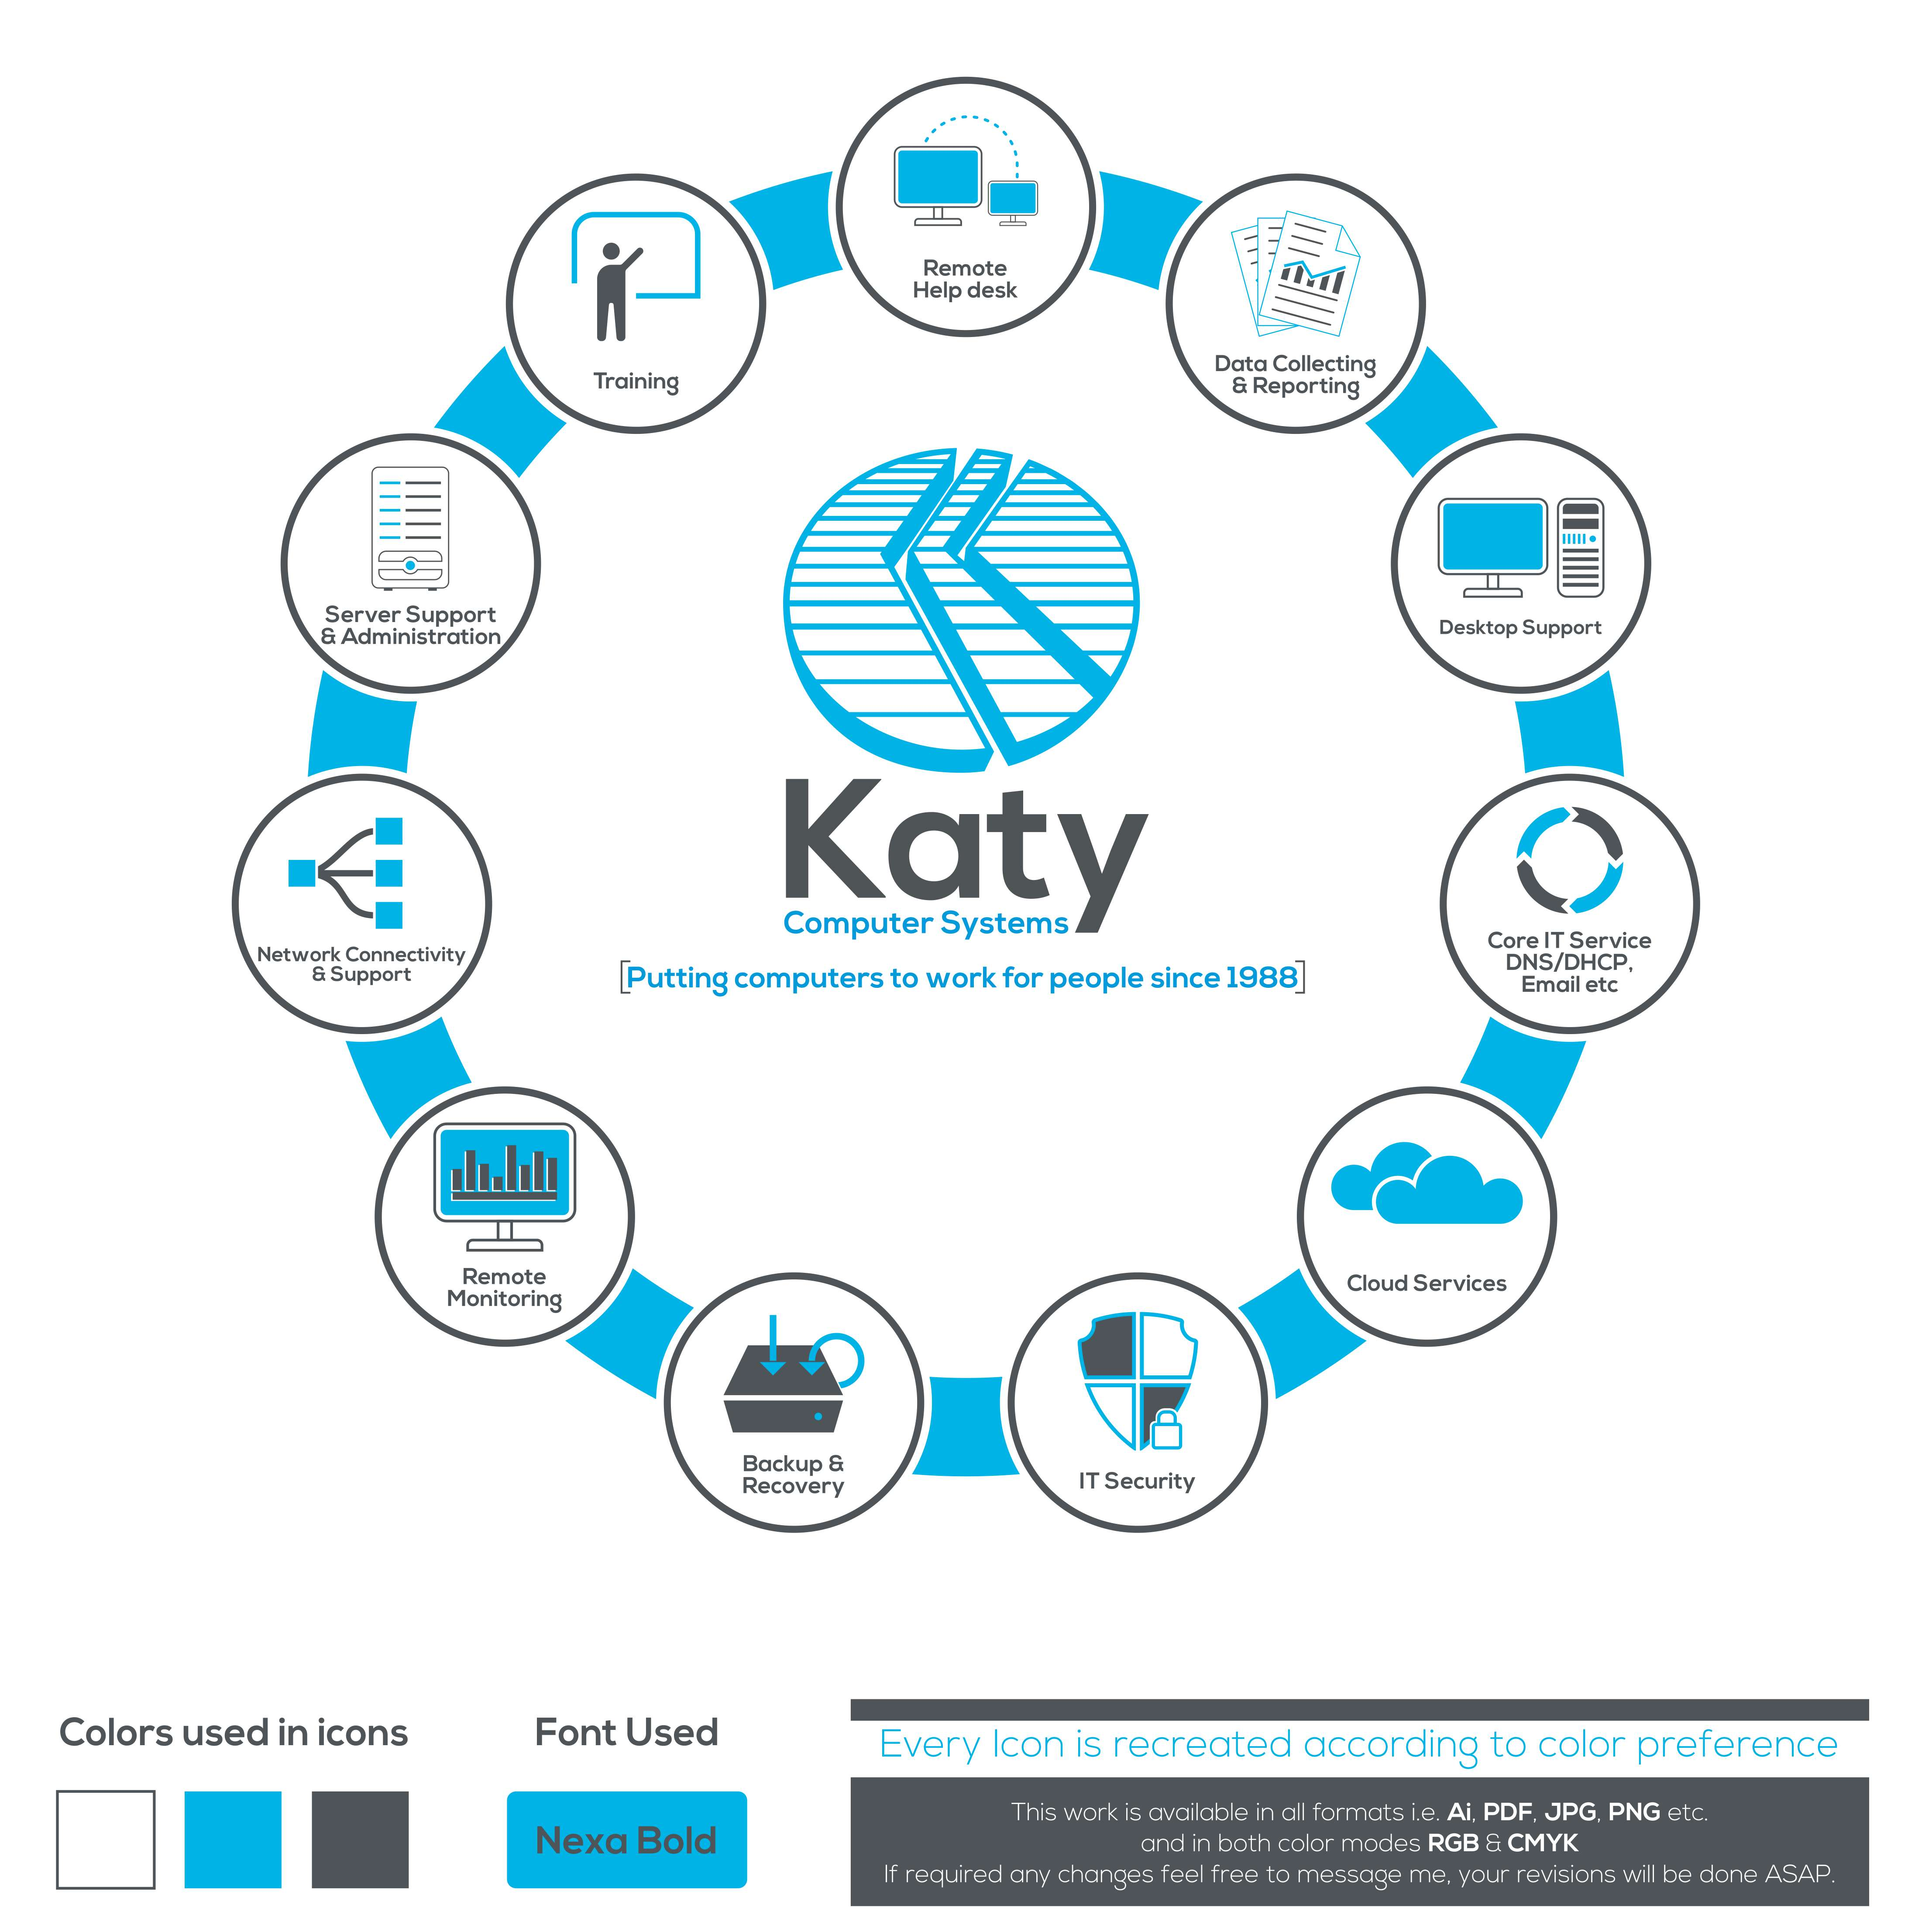 Professional Upmarket It Professional Vector Design For Katy Computer Systems By Awais Ahmad Design 24715258